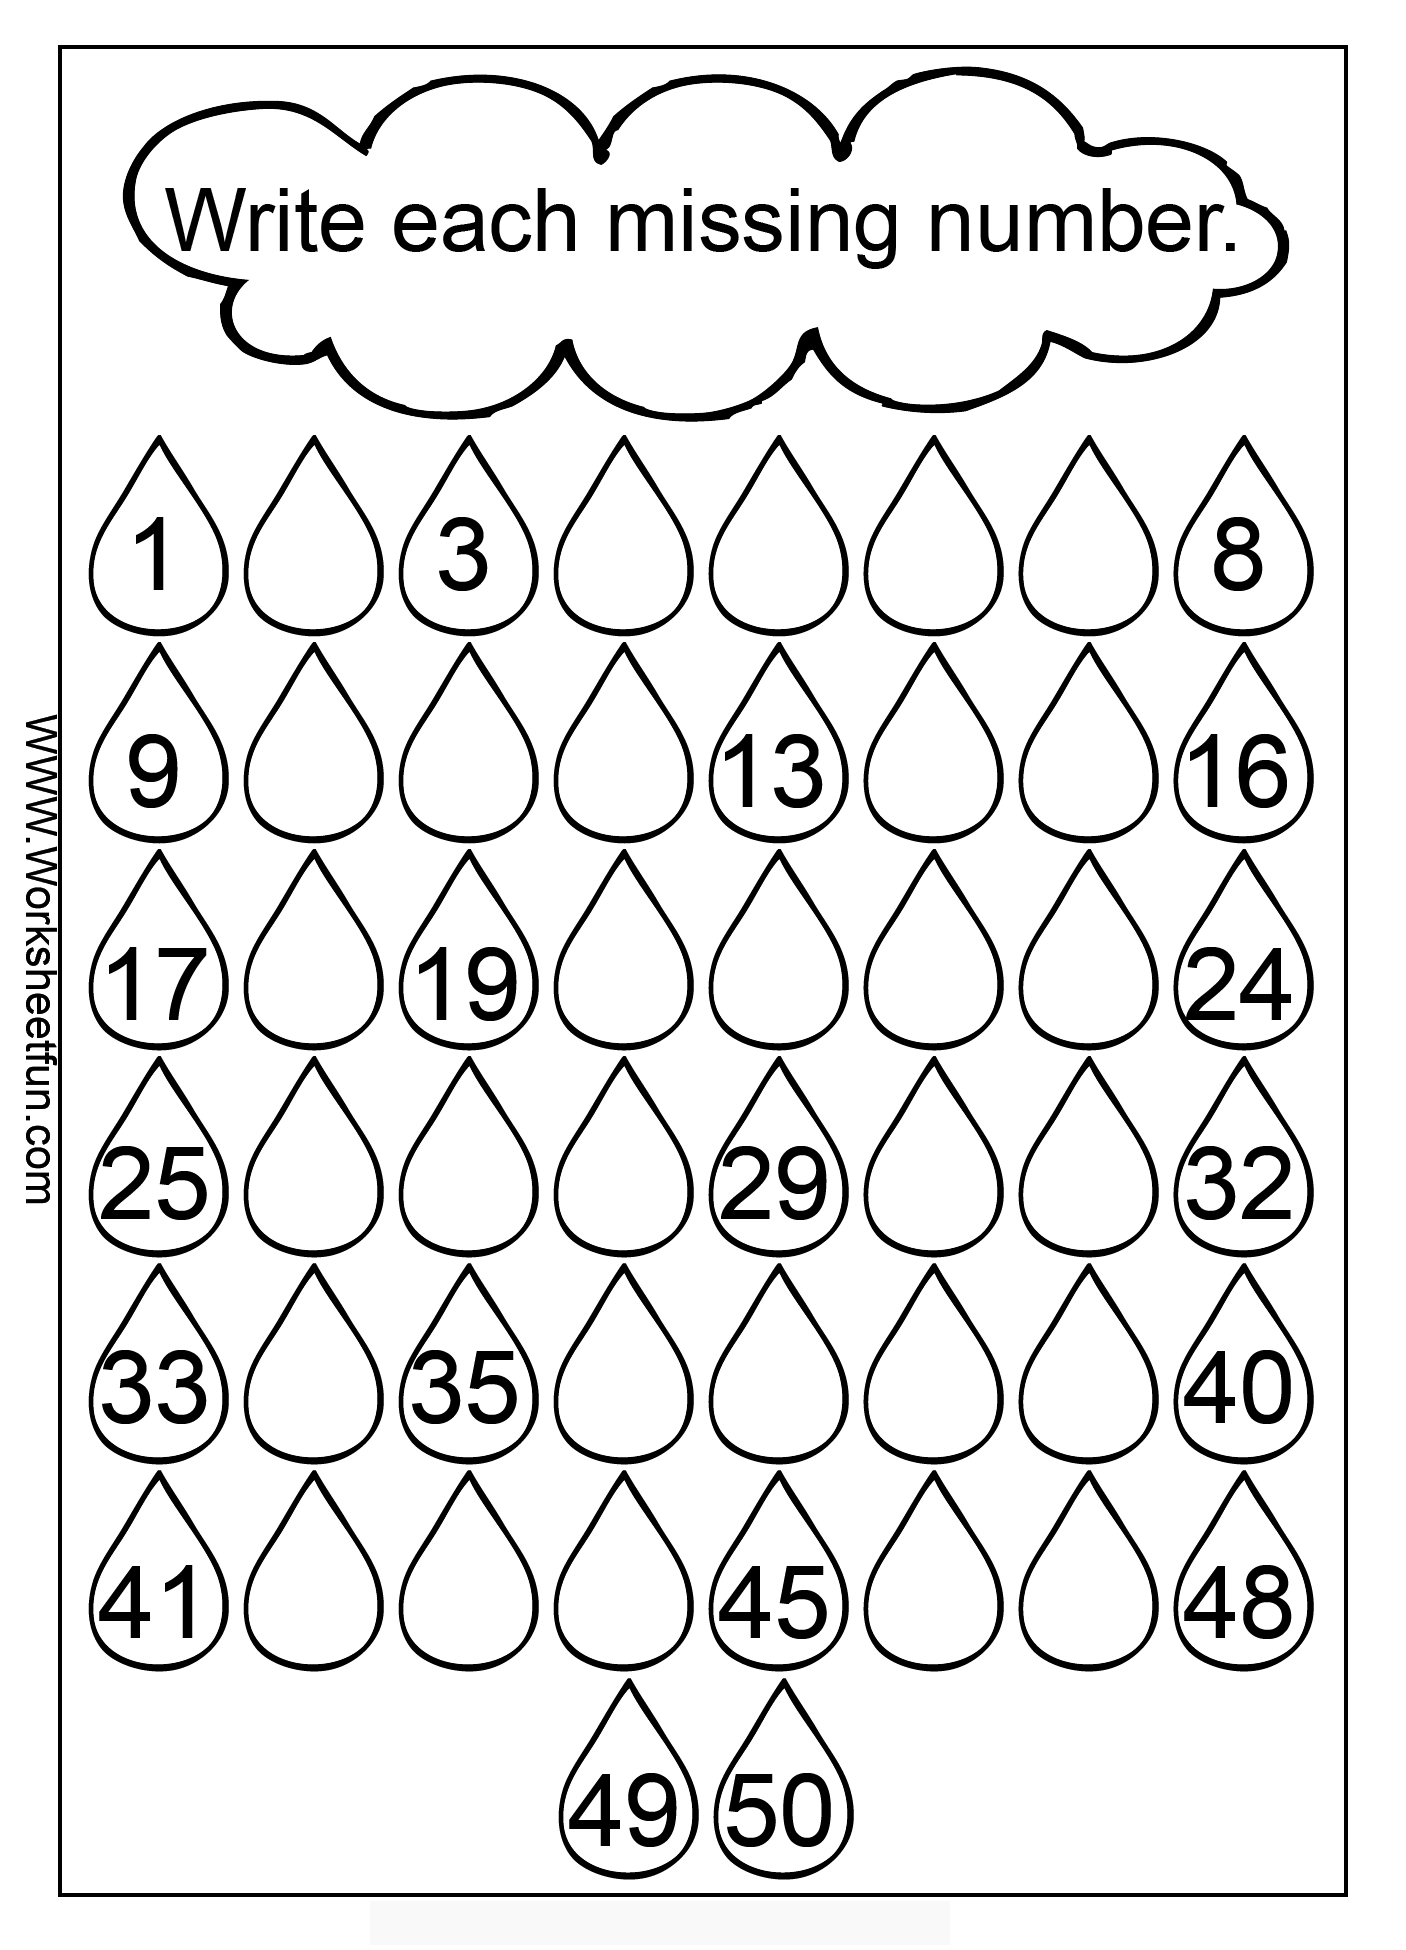 Fill In The Missing Numbers Worksheet With Images